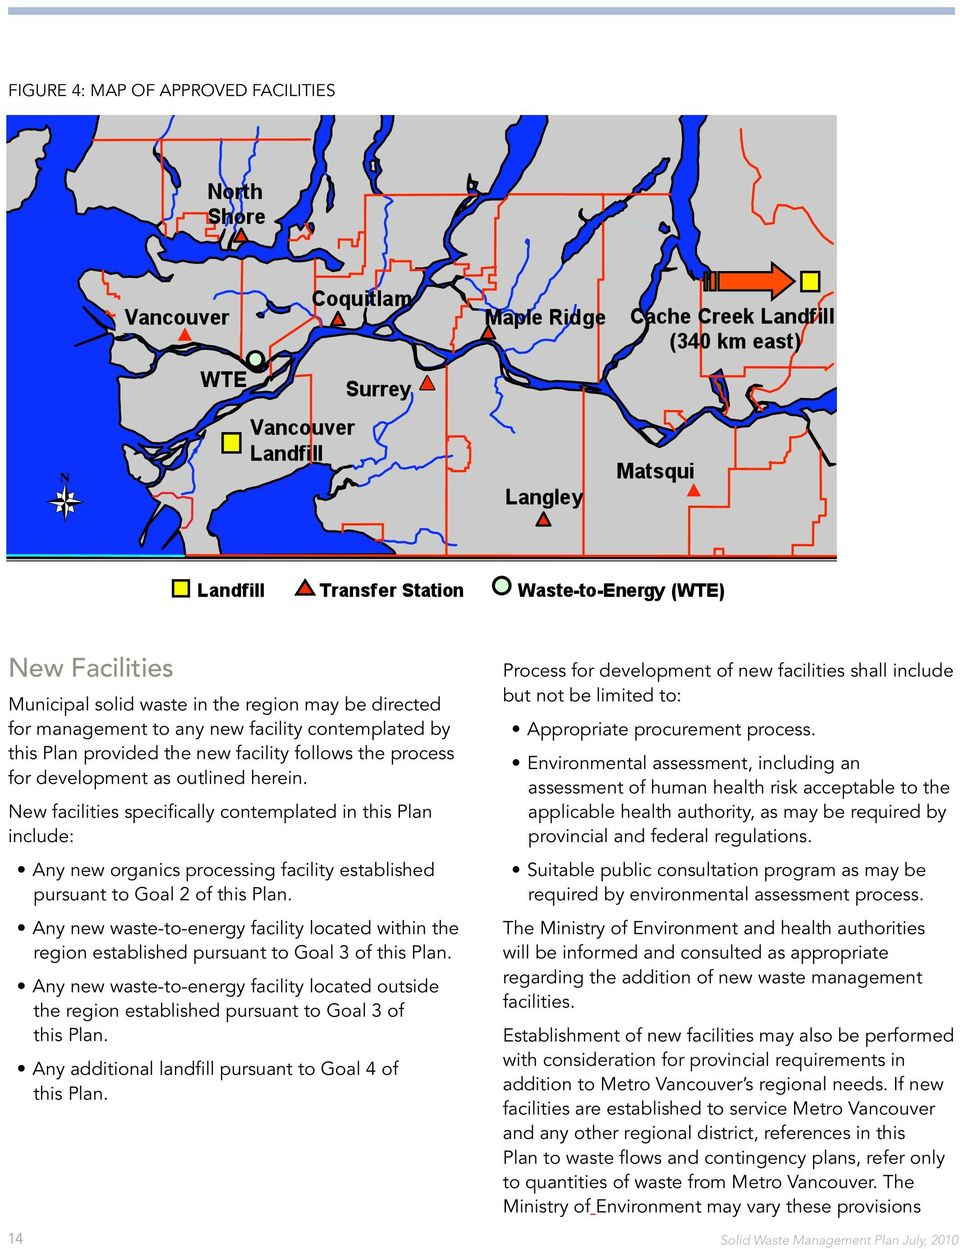 Any new waste-to-energy facility located within the region established pursuant to Goal 3 of this Plan.